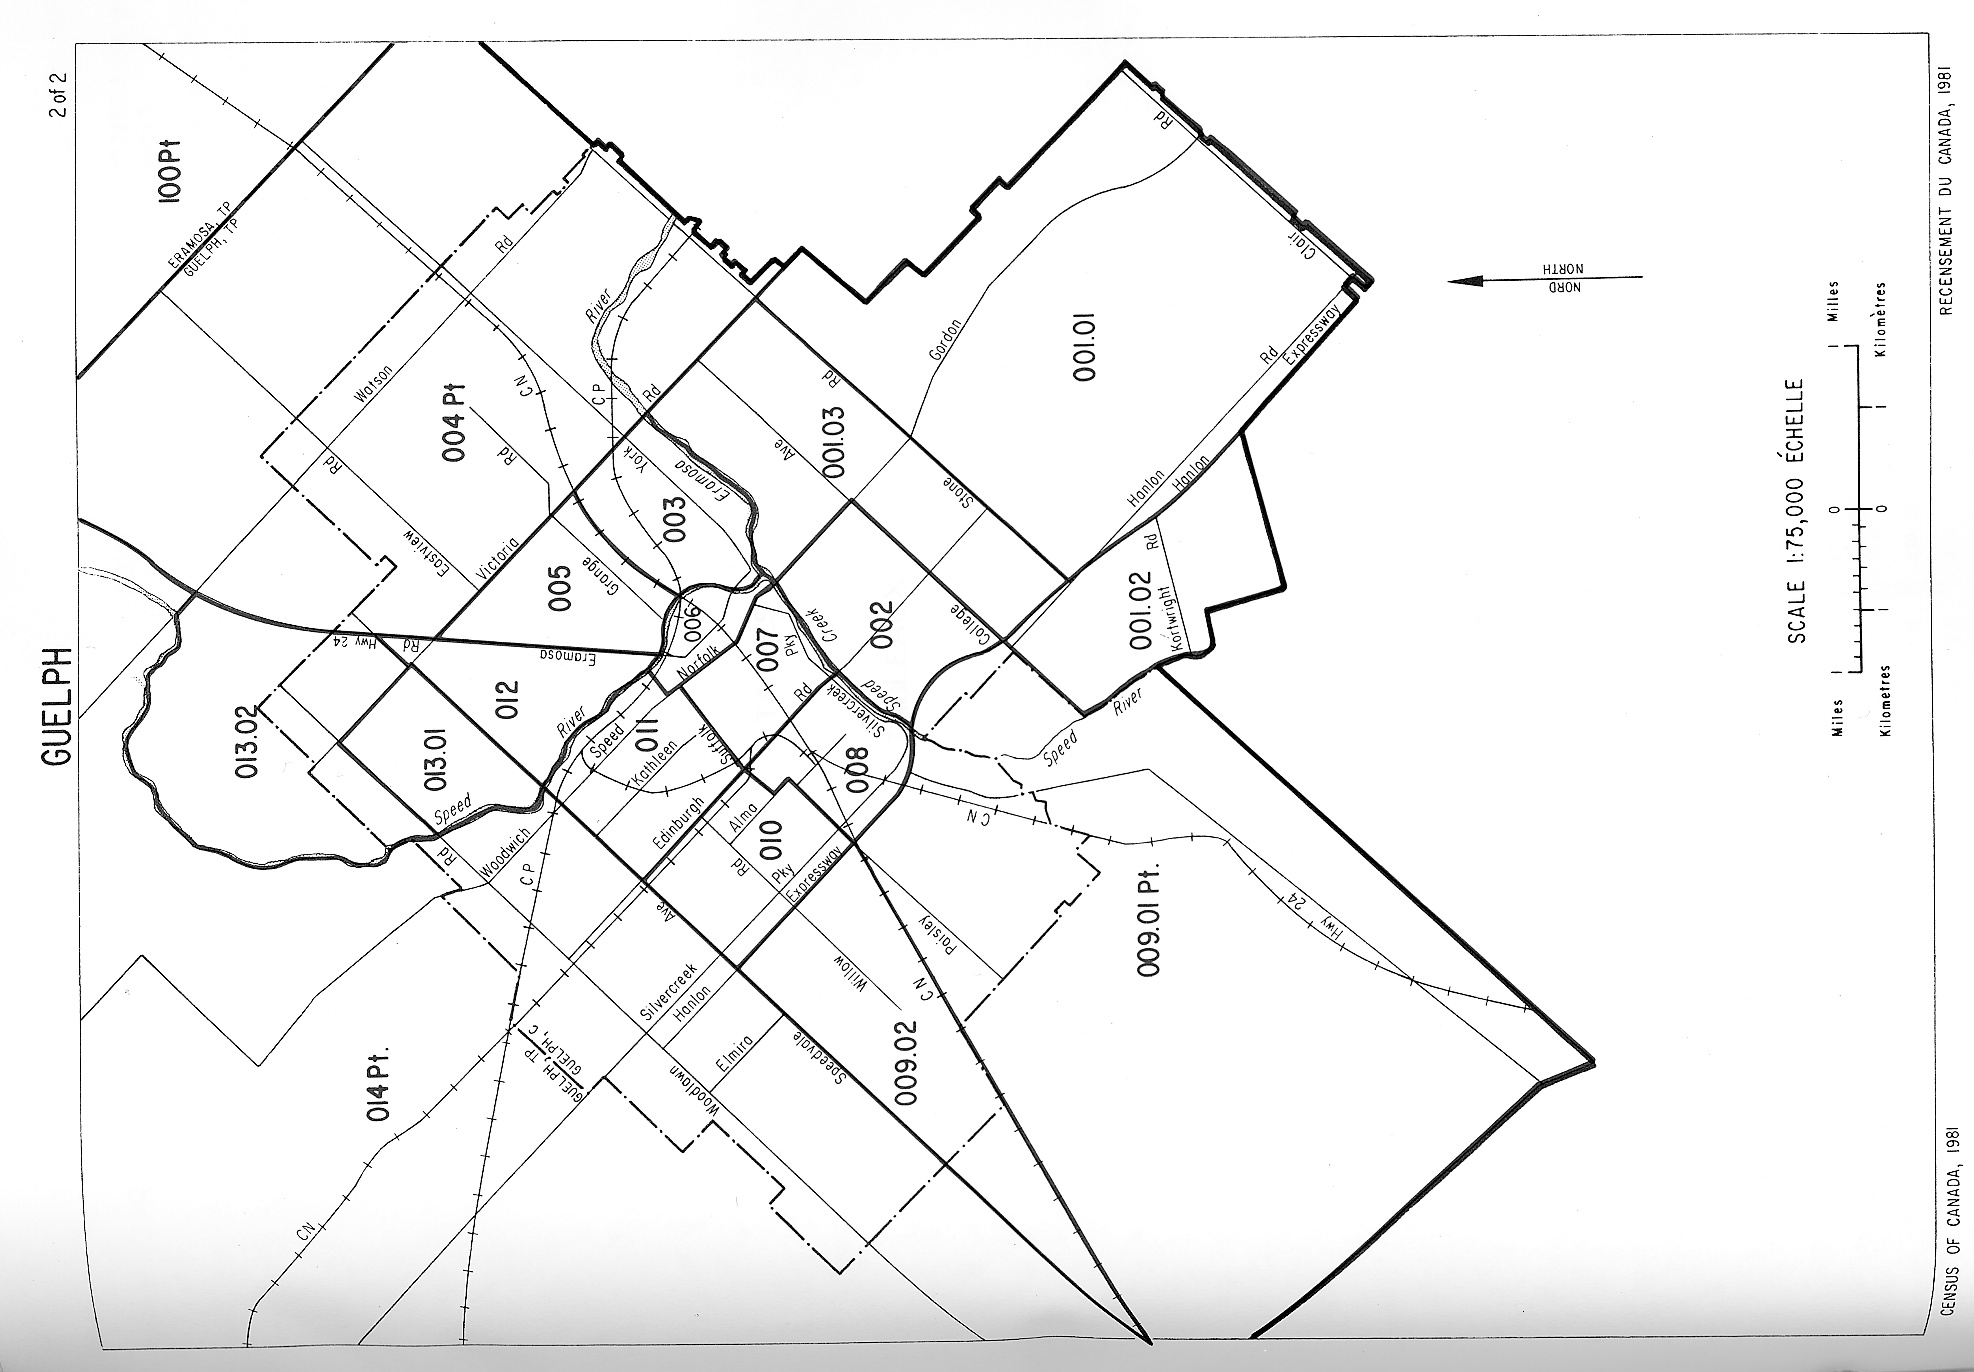 Guelph Ontario Map Images - Guelph map